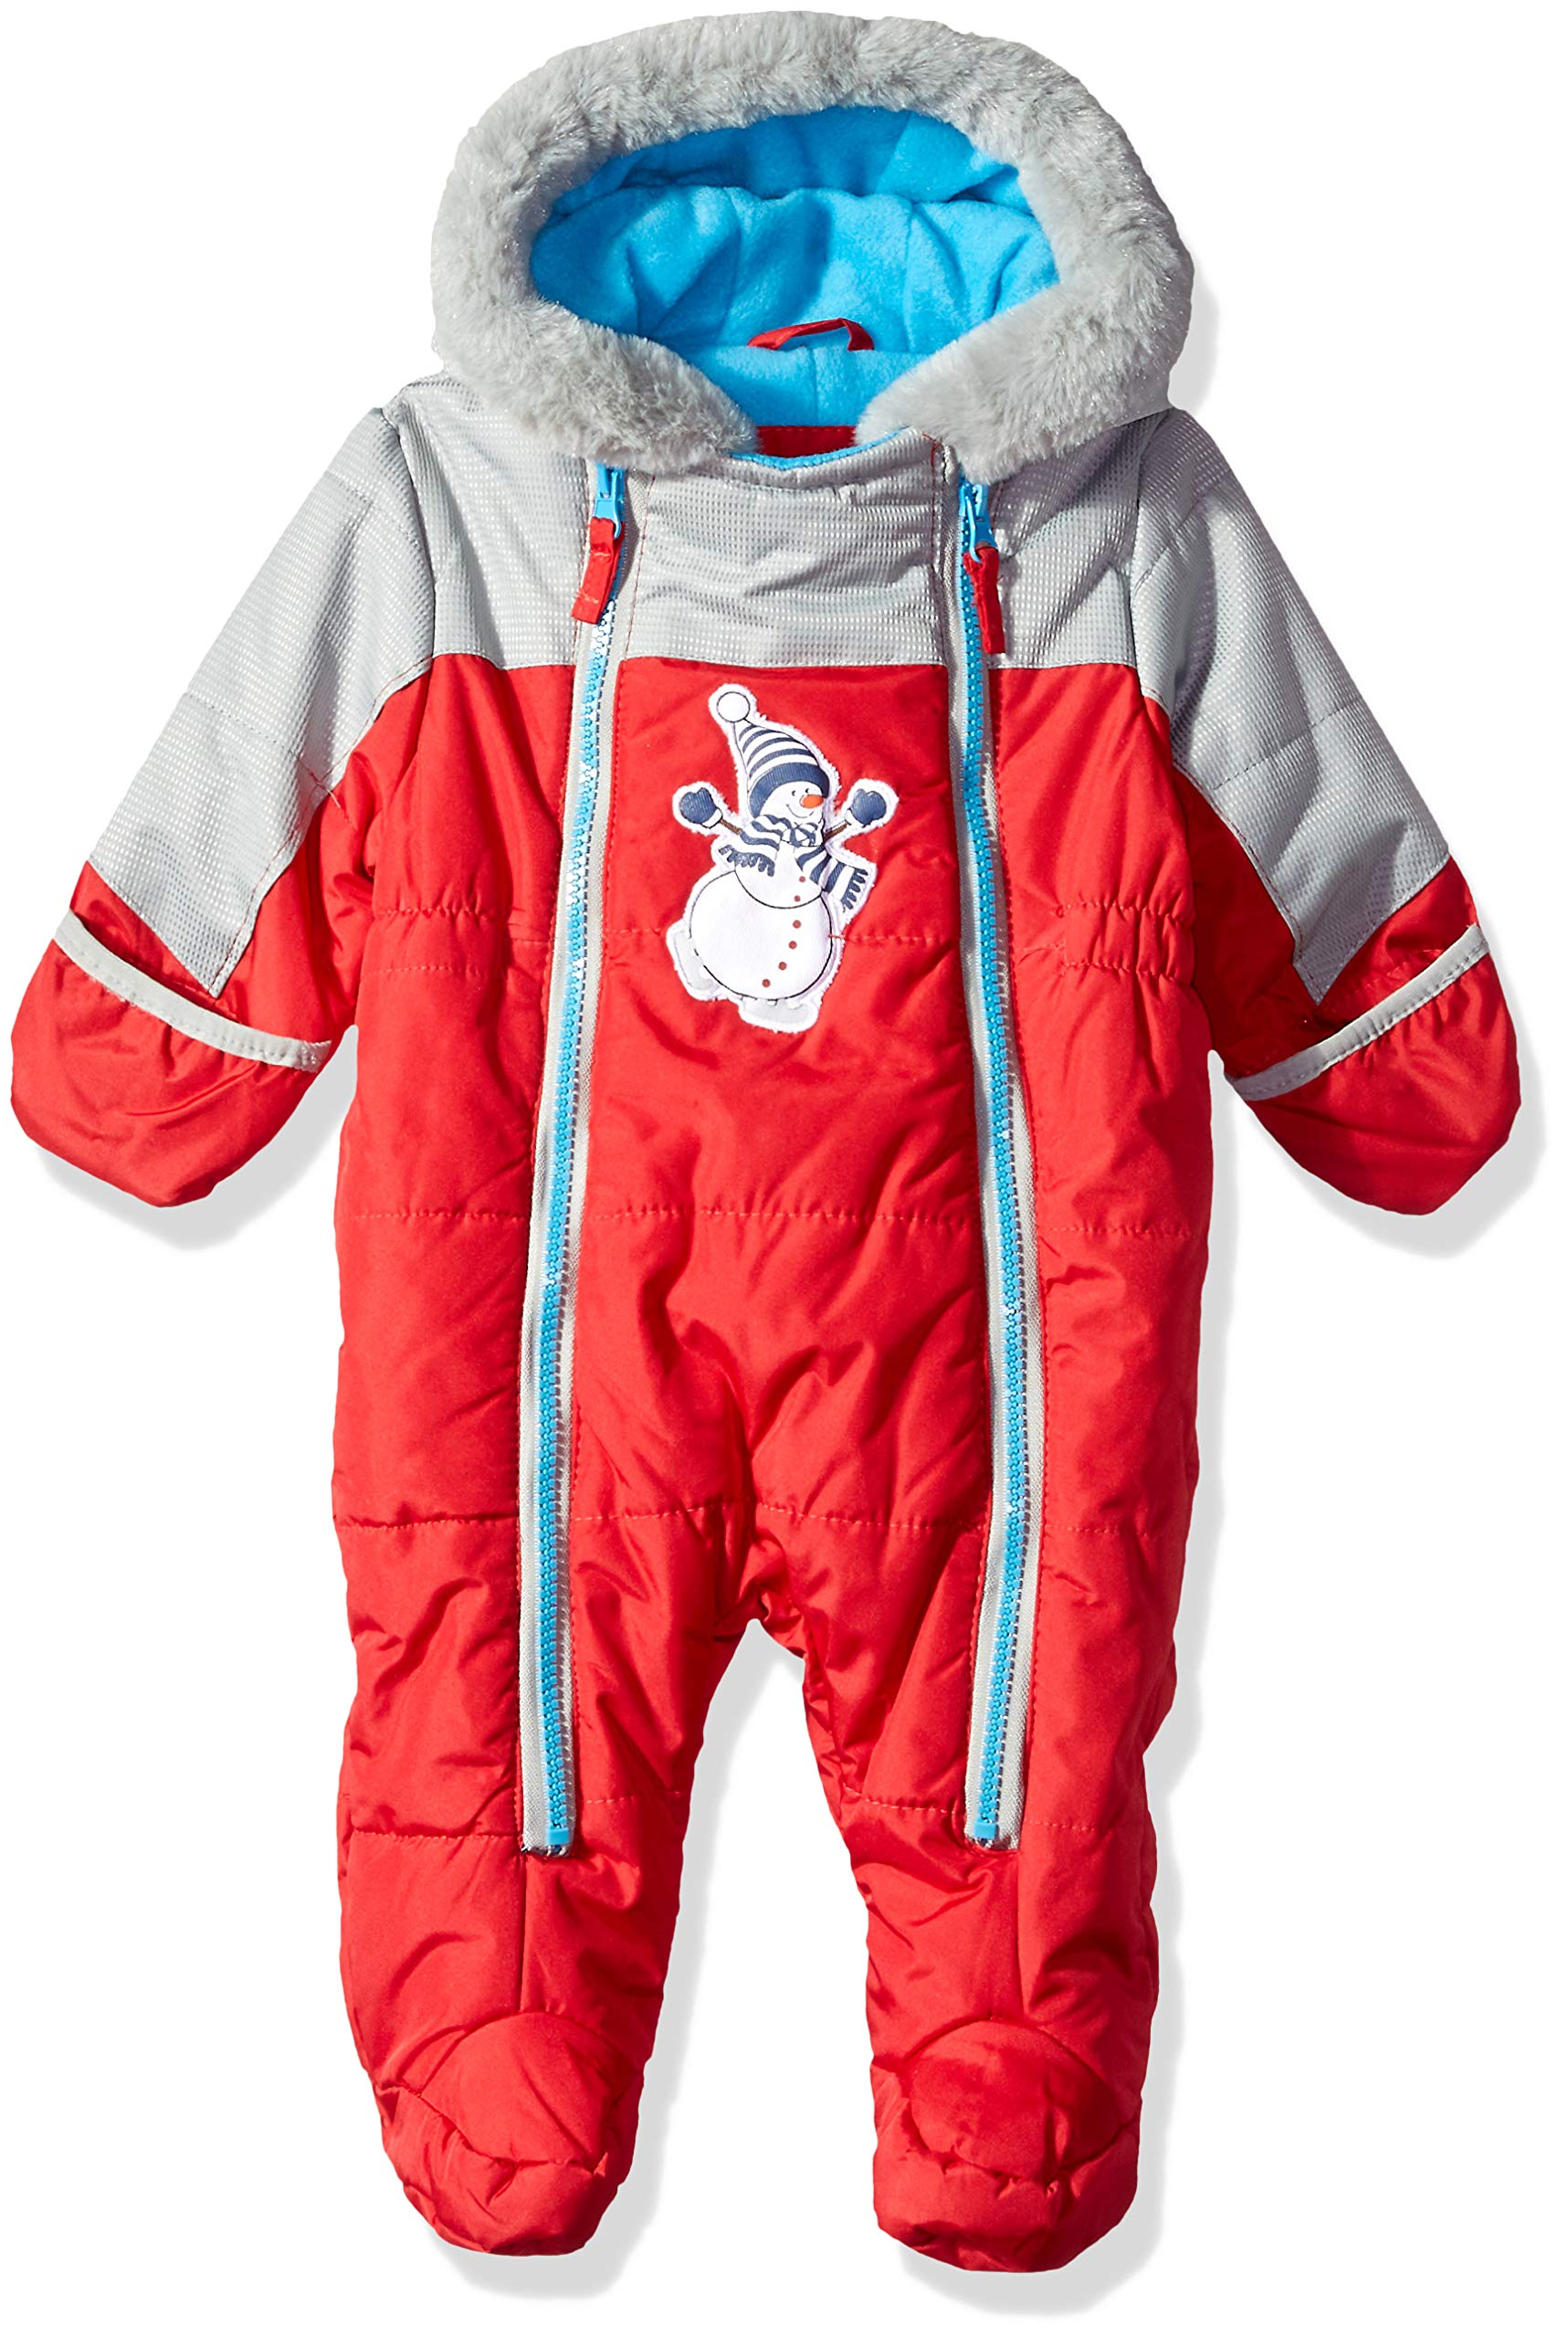 Wippette Baby Boys Snowsuit Pram, Snowman red, 6/9M by Wippette